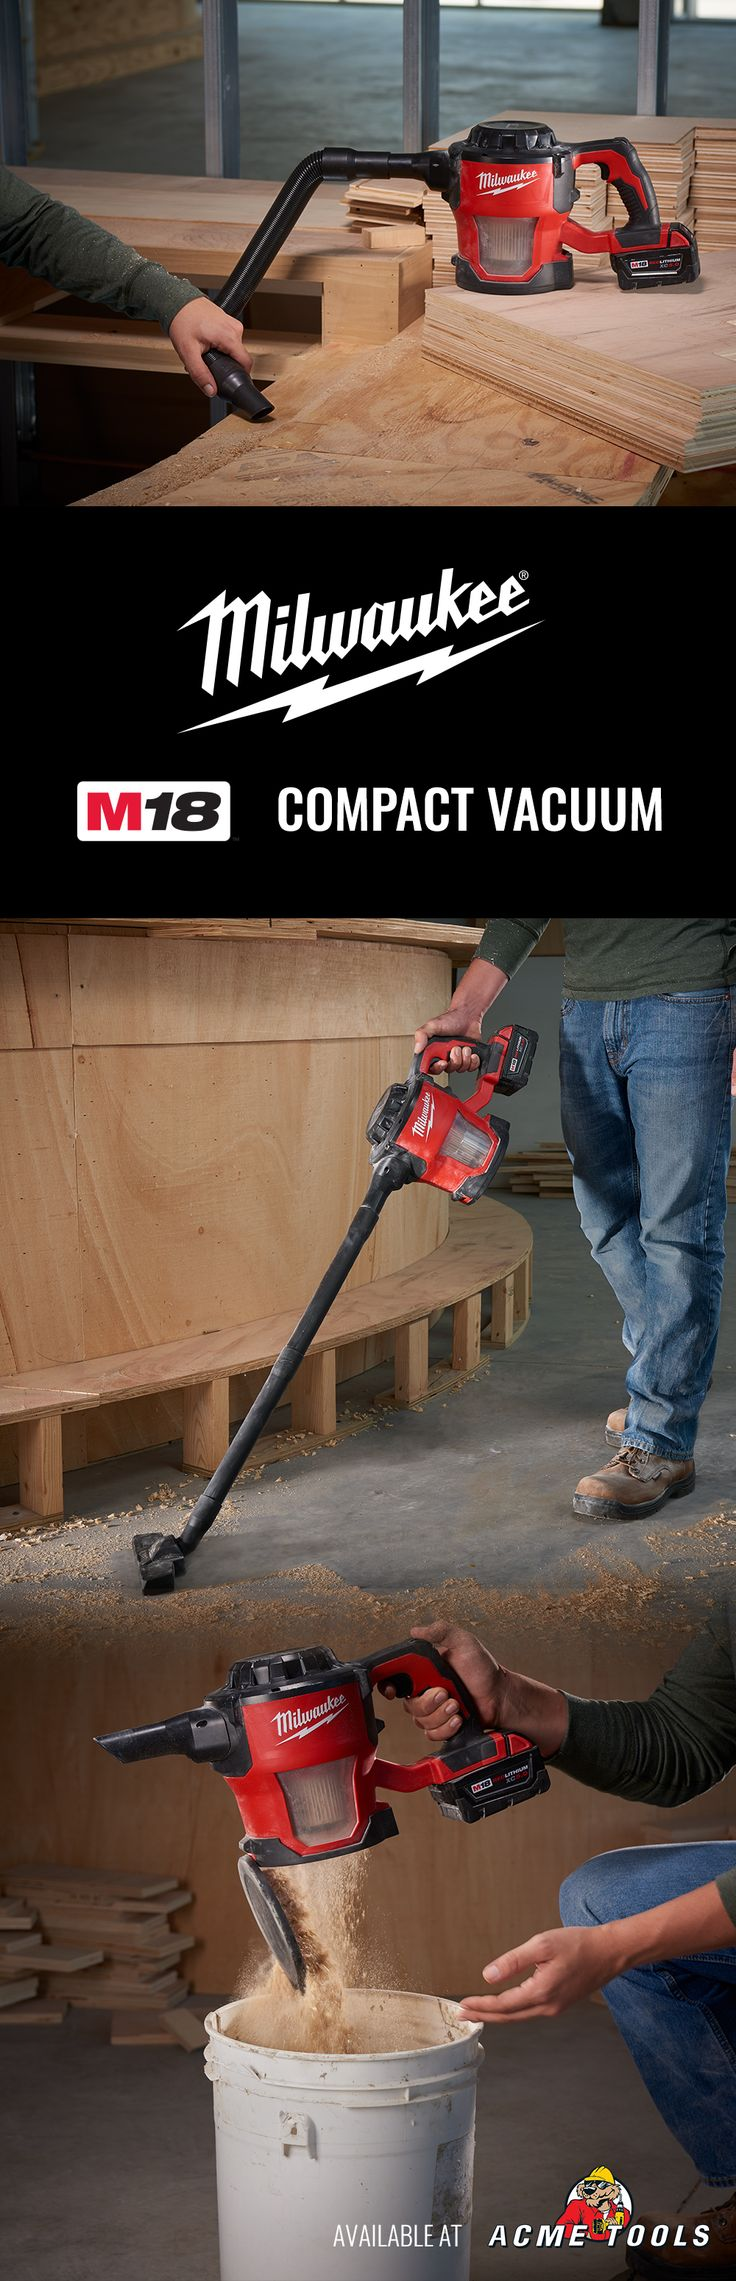 Get Milwaukee's M18 Cordless, Handheld Vacuum at Acme Tools.